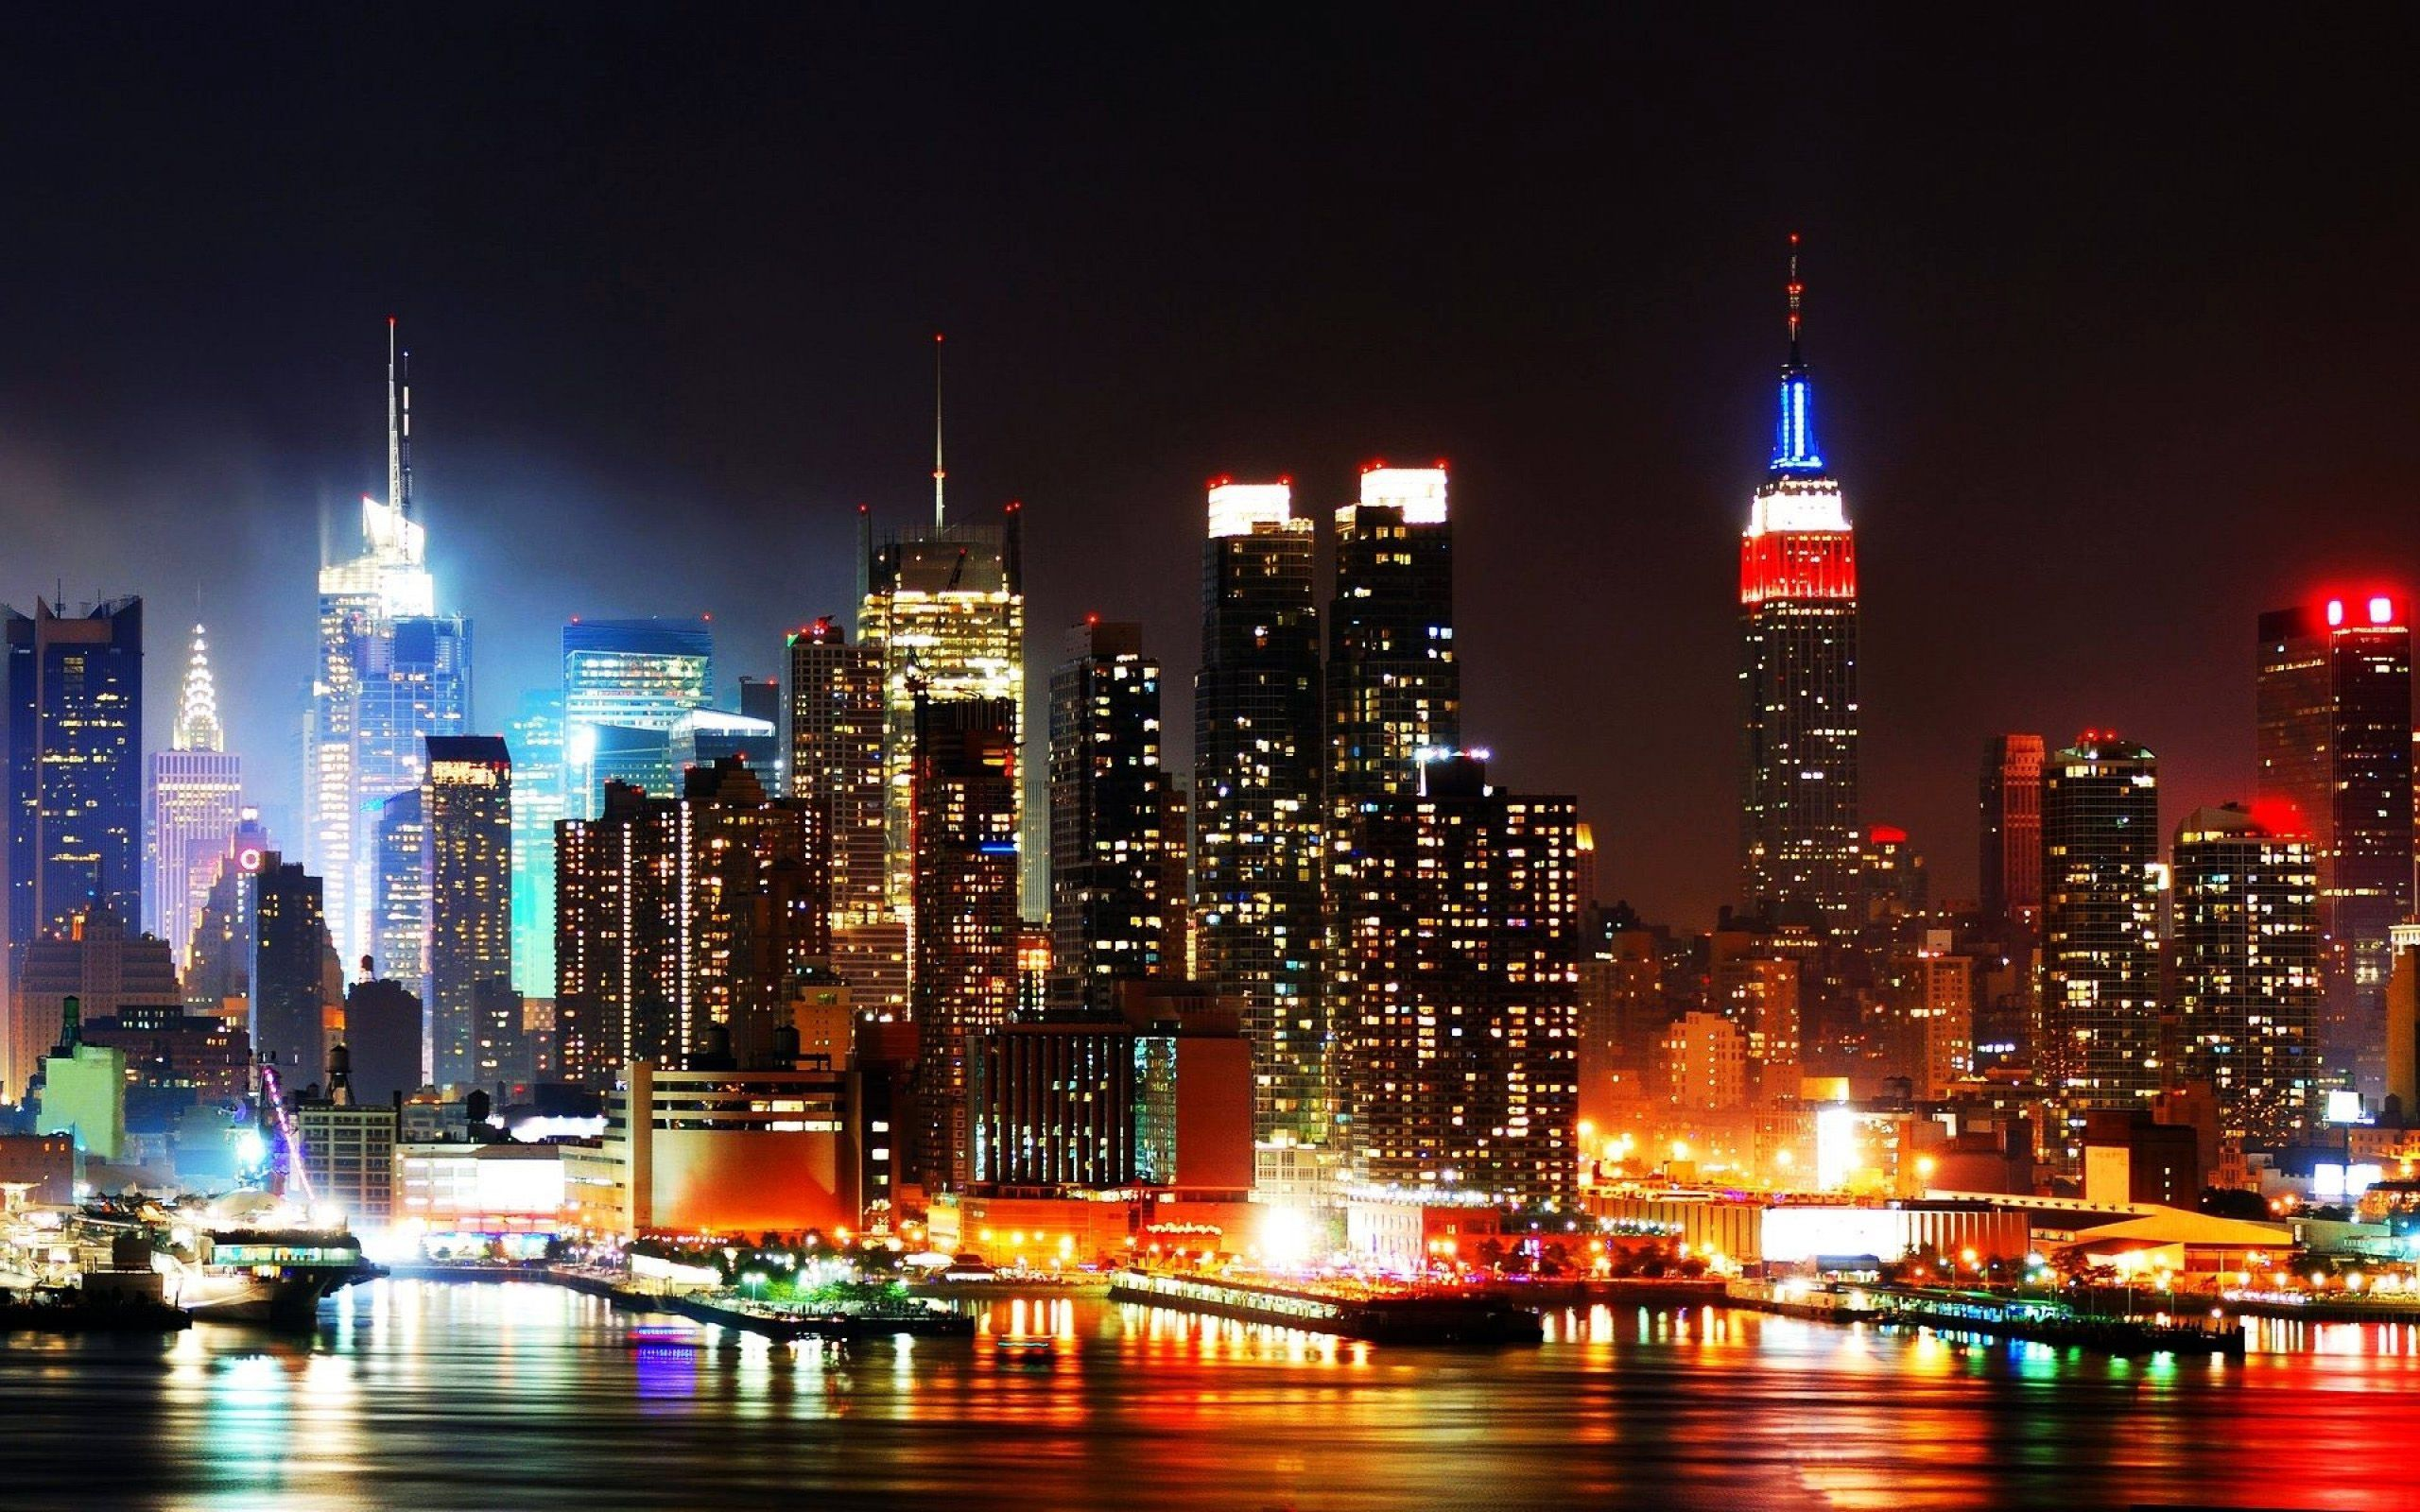 Time Lapse Captures Stunning Sights of NYC [VIDEO]